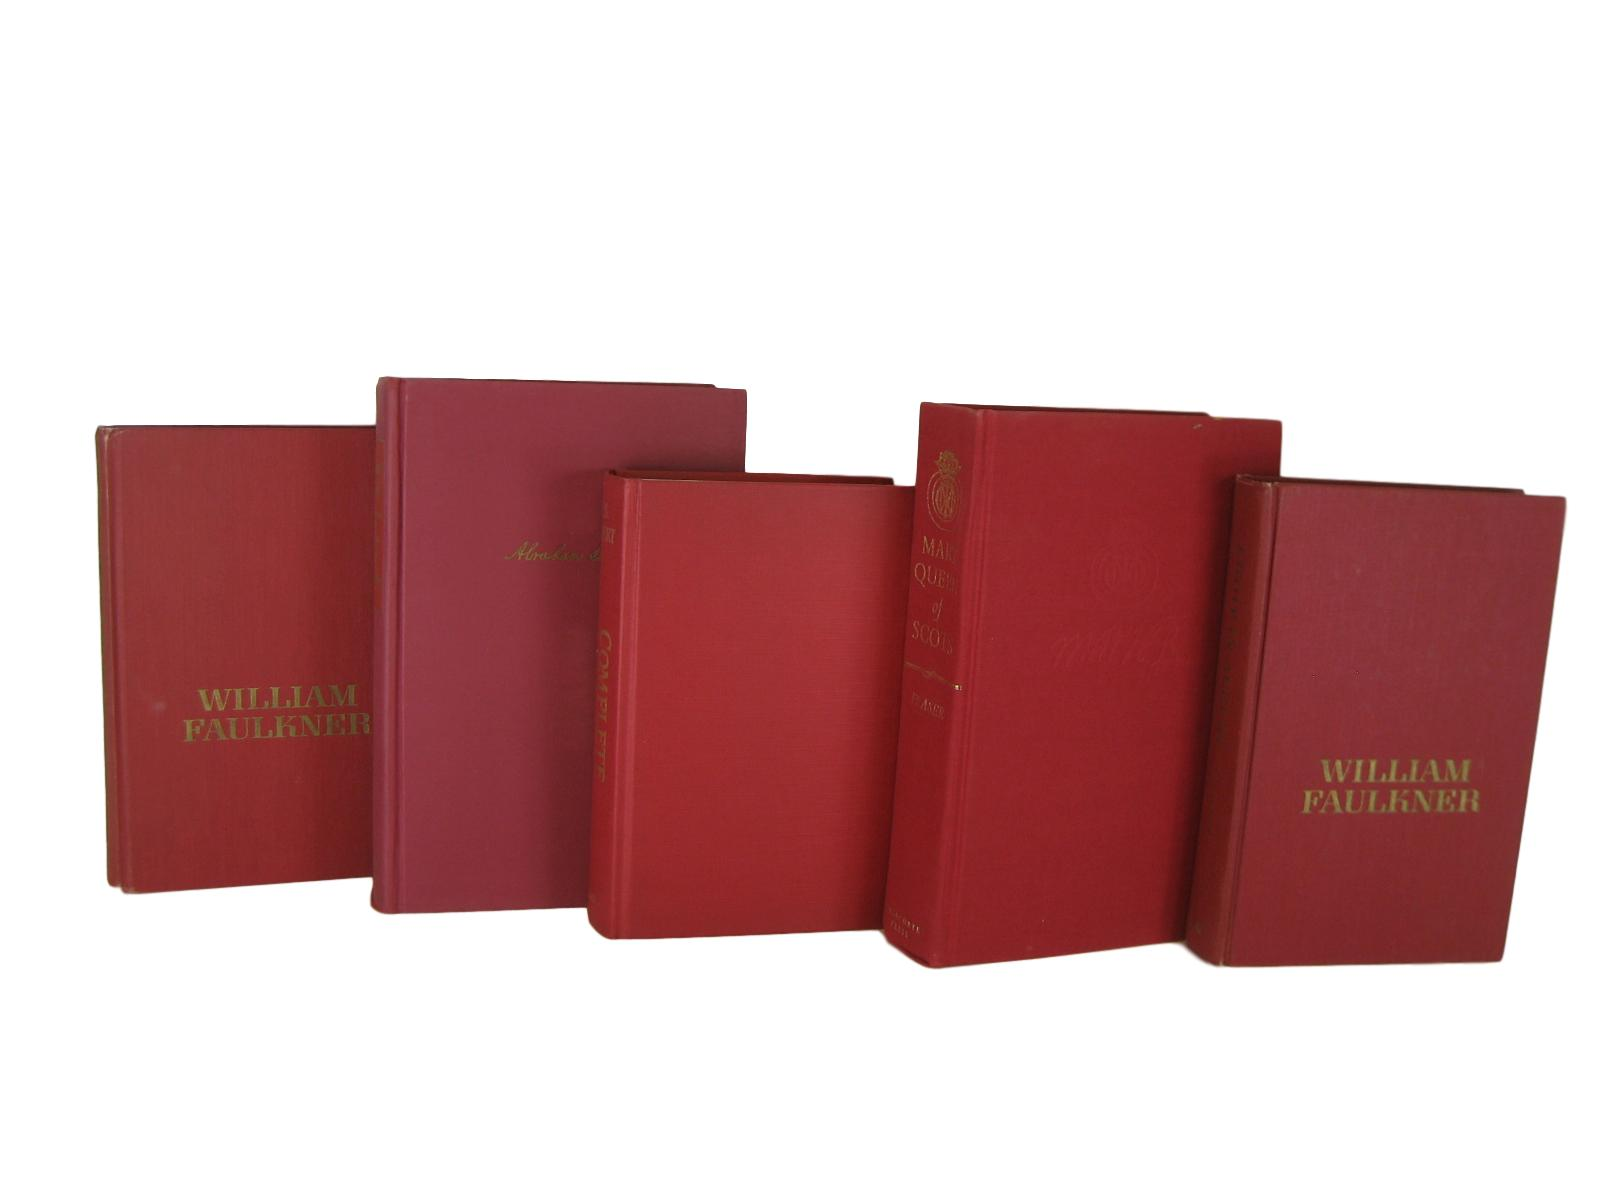 Red Decorative Books, Vintage Books by Color, S/5 - Decades of Vintage